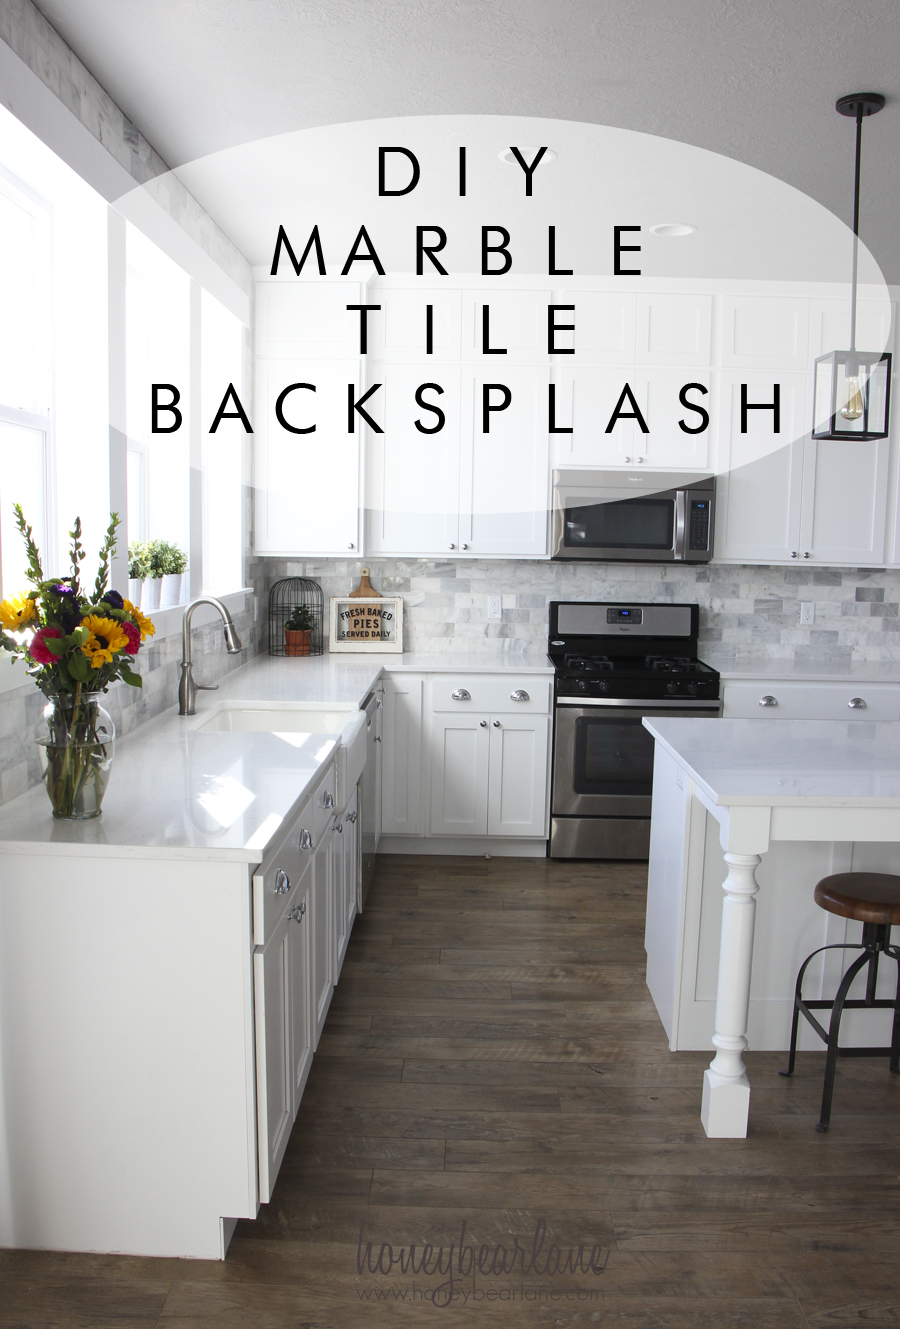 Kitchen Floor Marble my diy marble backsplash - honeybear lane